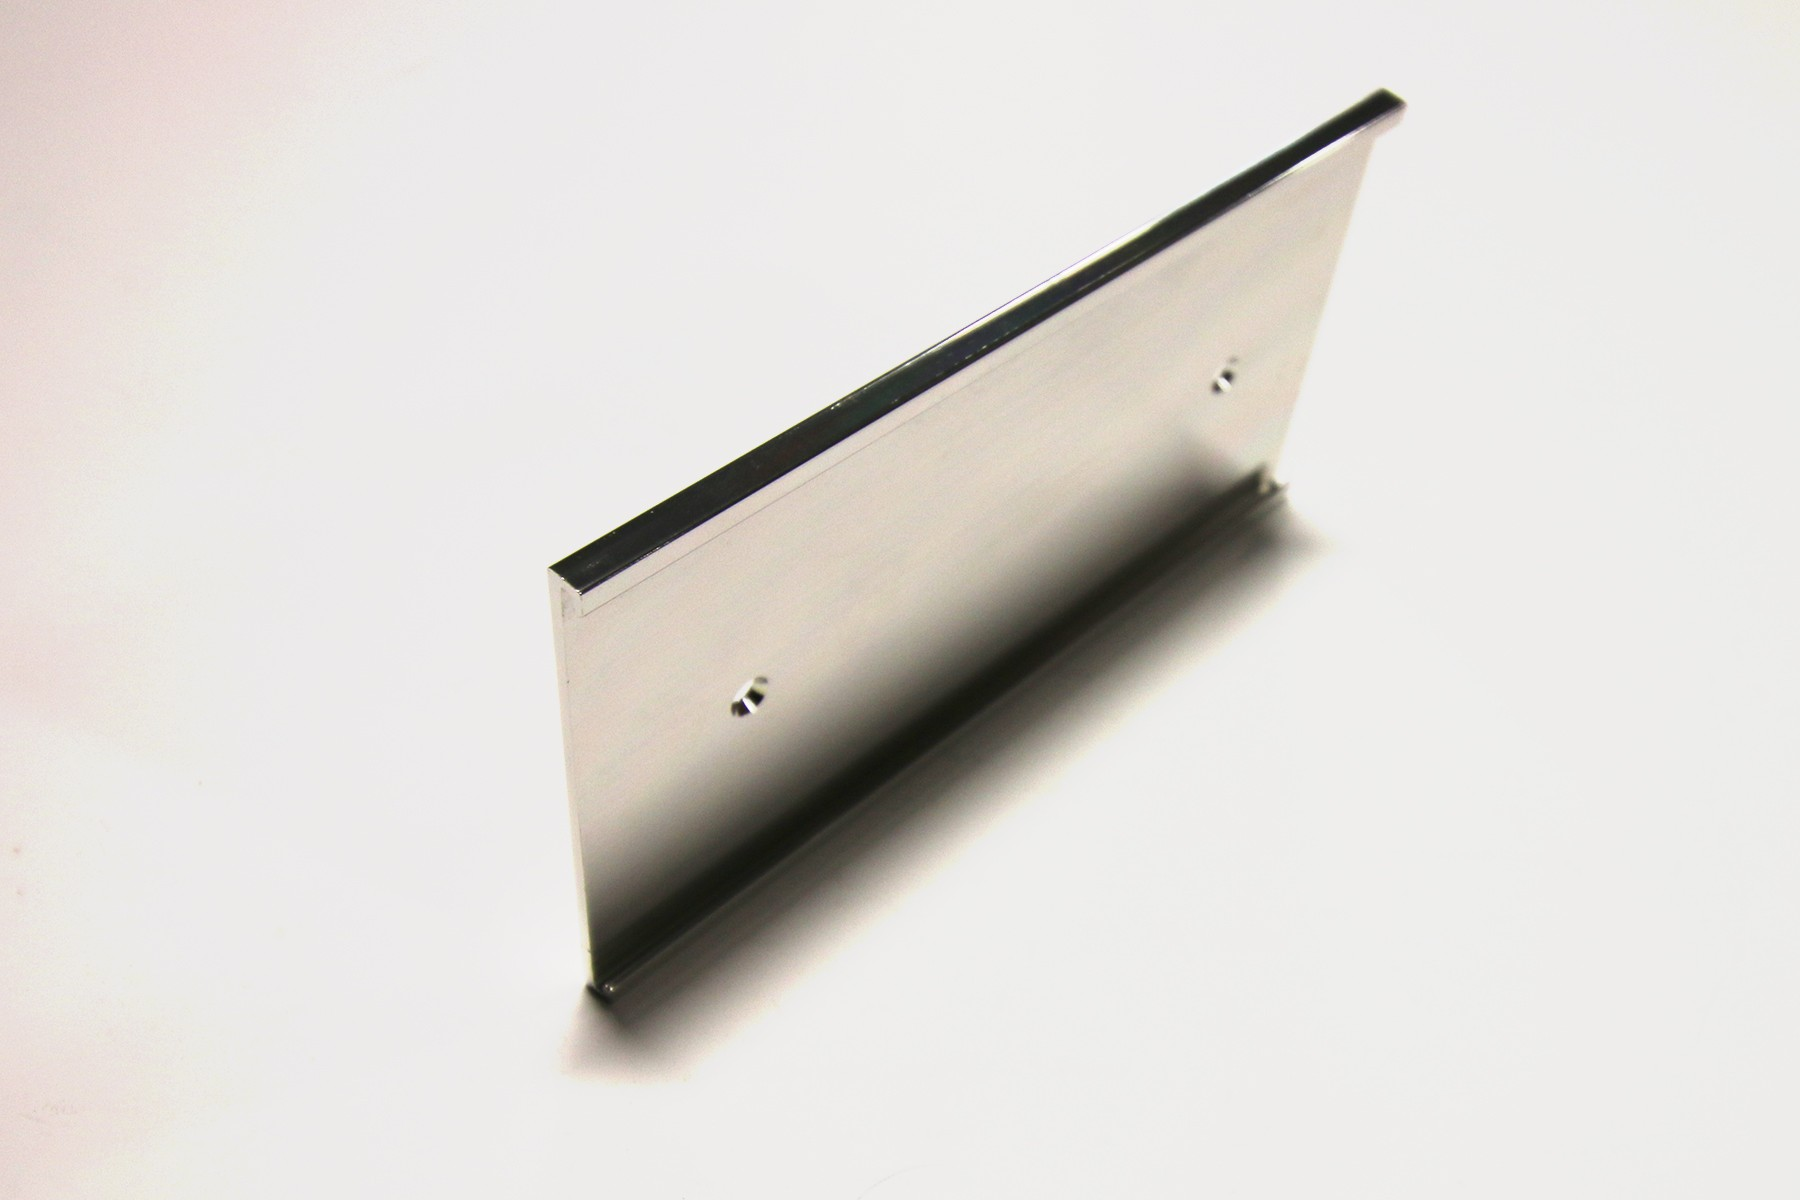 3 x 10 Wall Holder (1/8), Silver